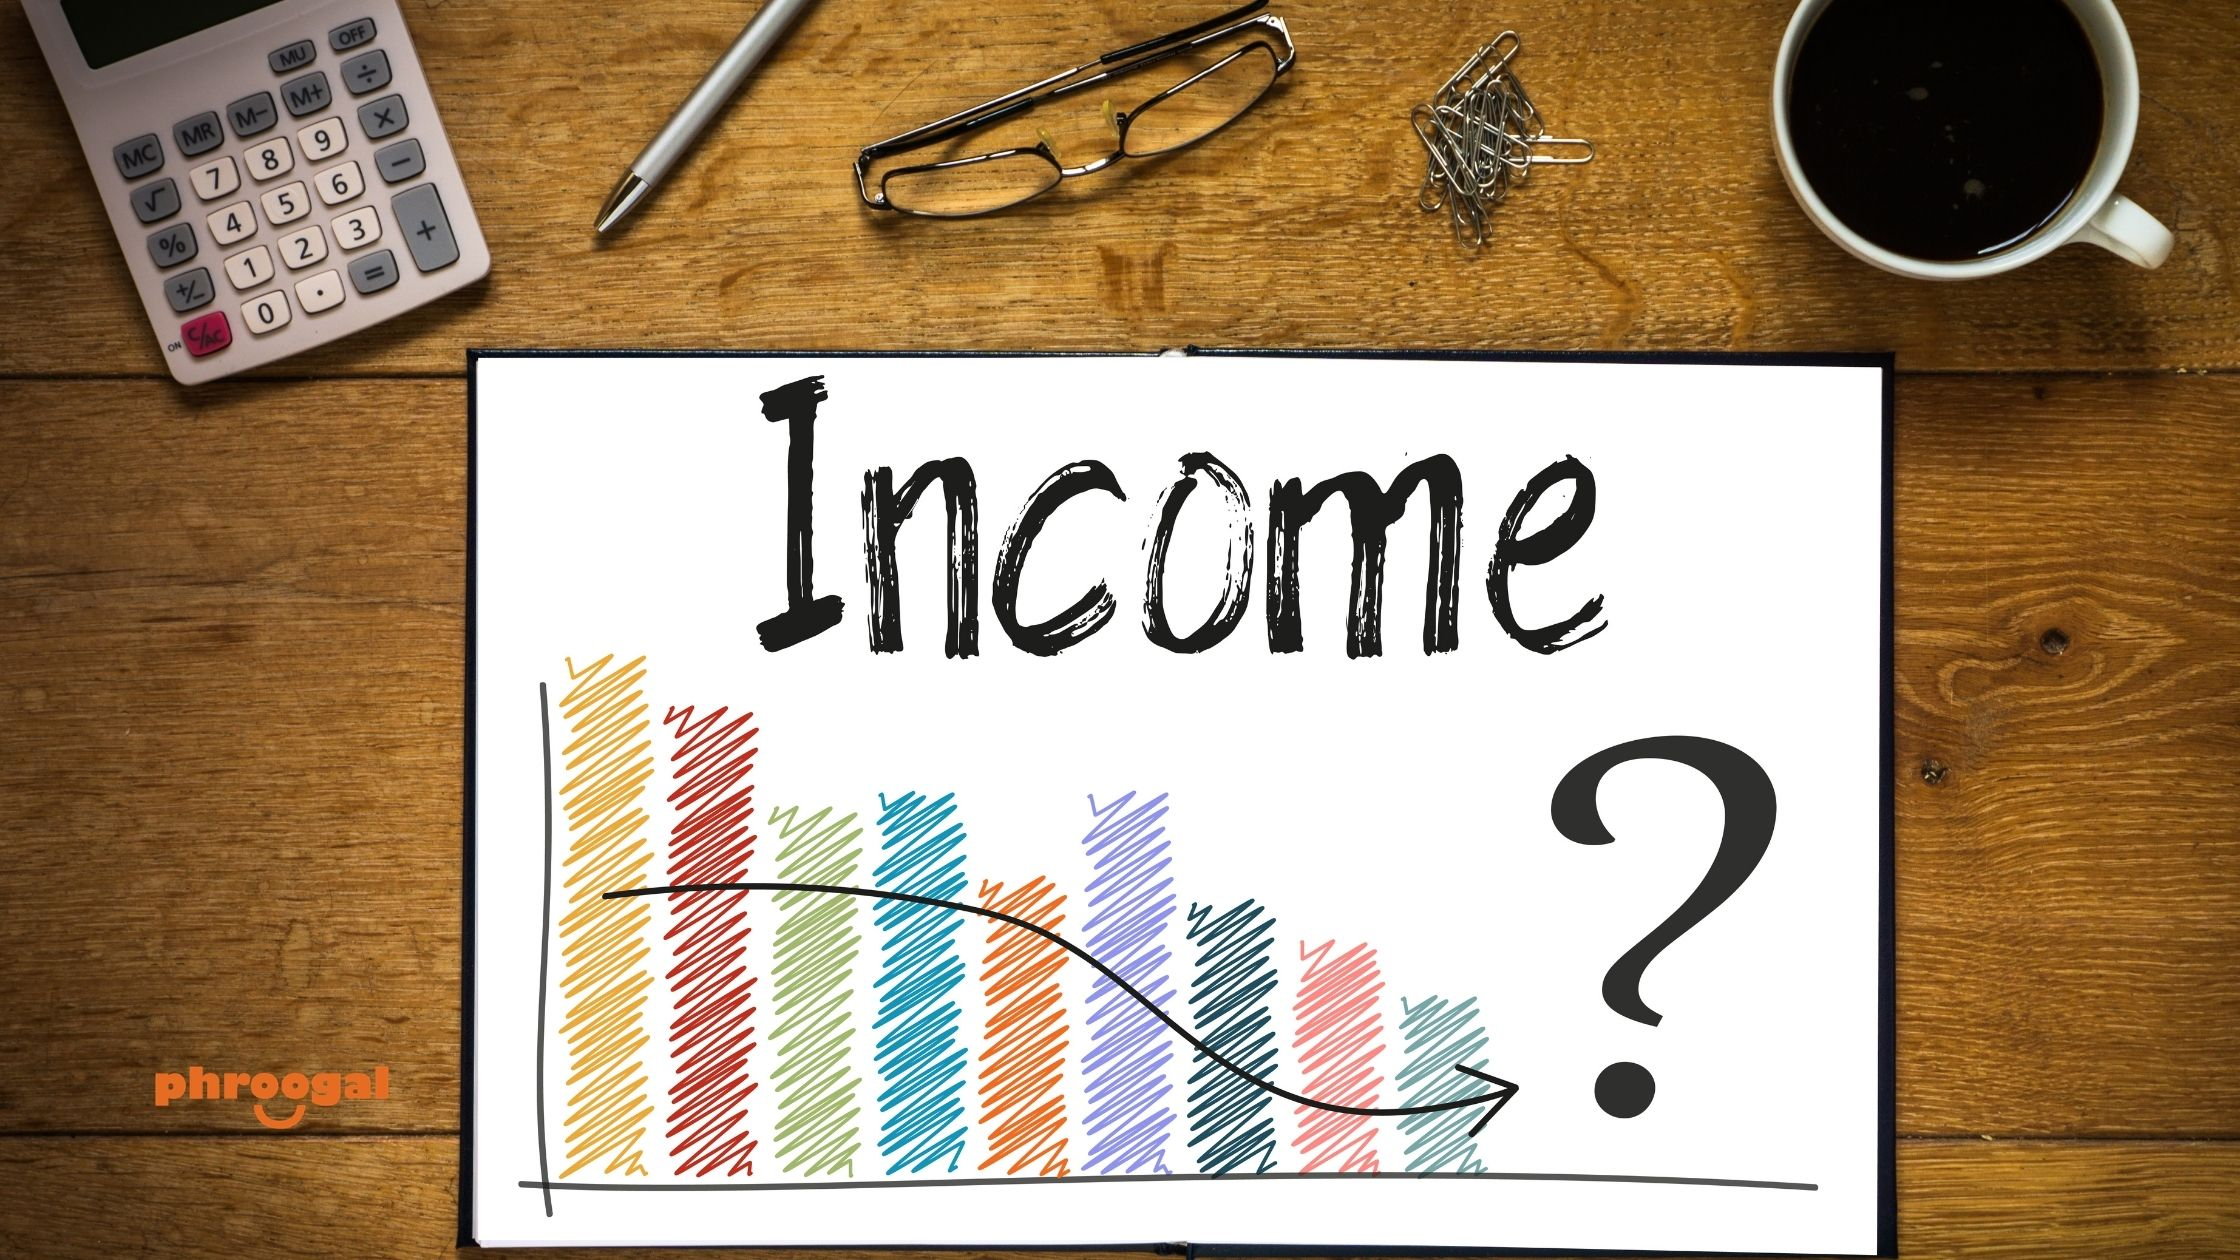 How to Calculate Your Income phroogal